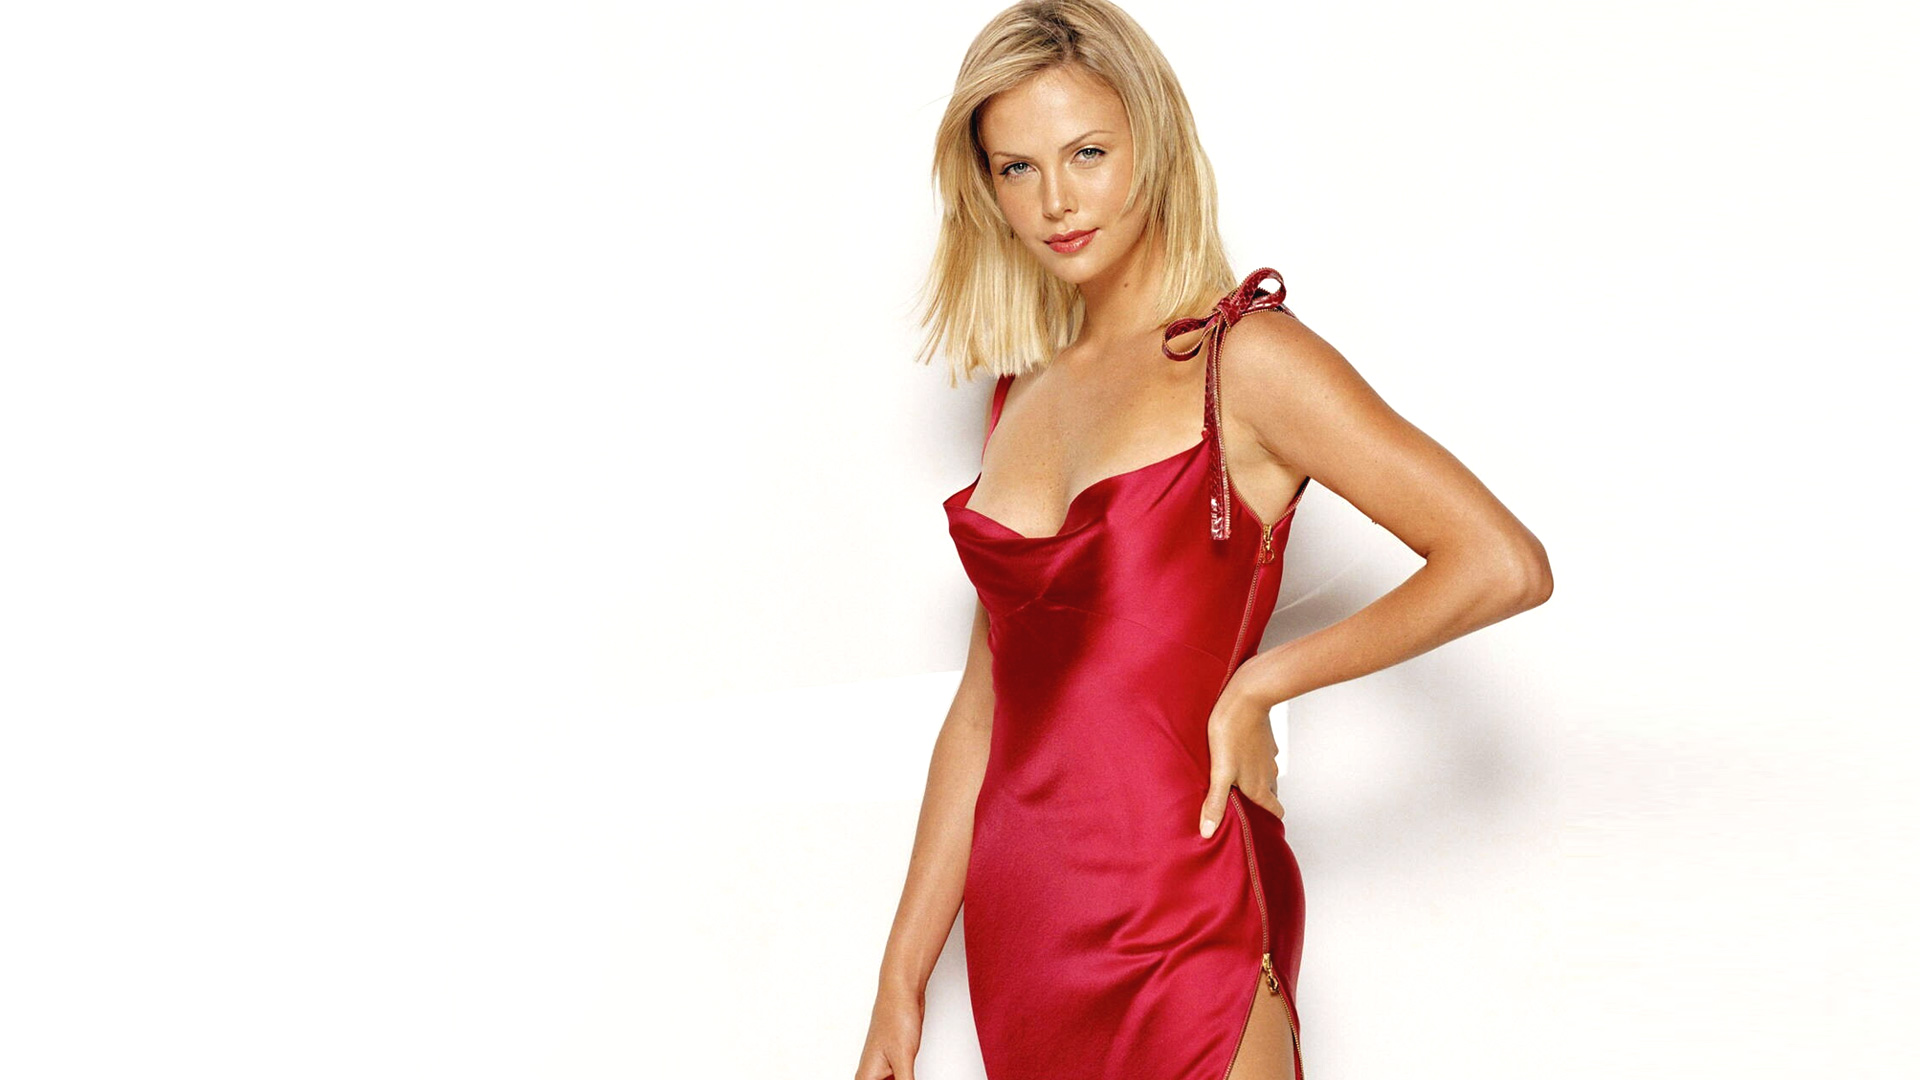 Charlize Theron Wallpapers | Photo 1of 5 | Charlize Theron Wallpapers | Charlize Theron